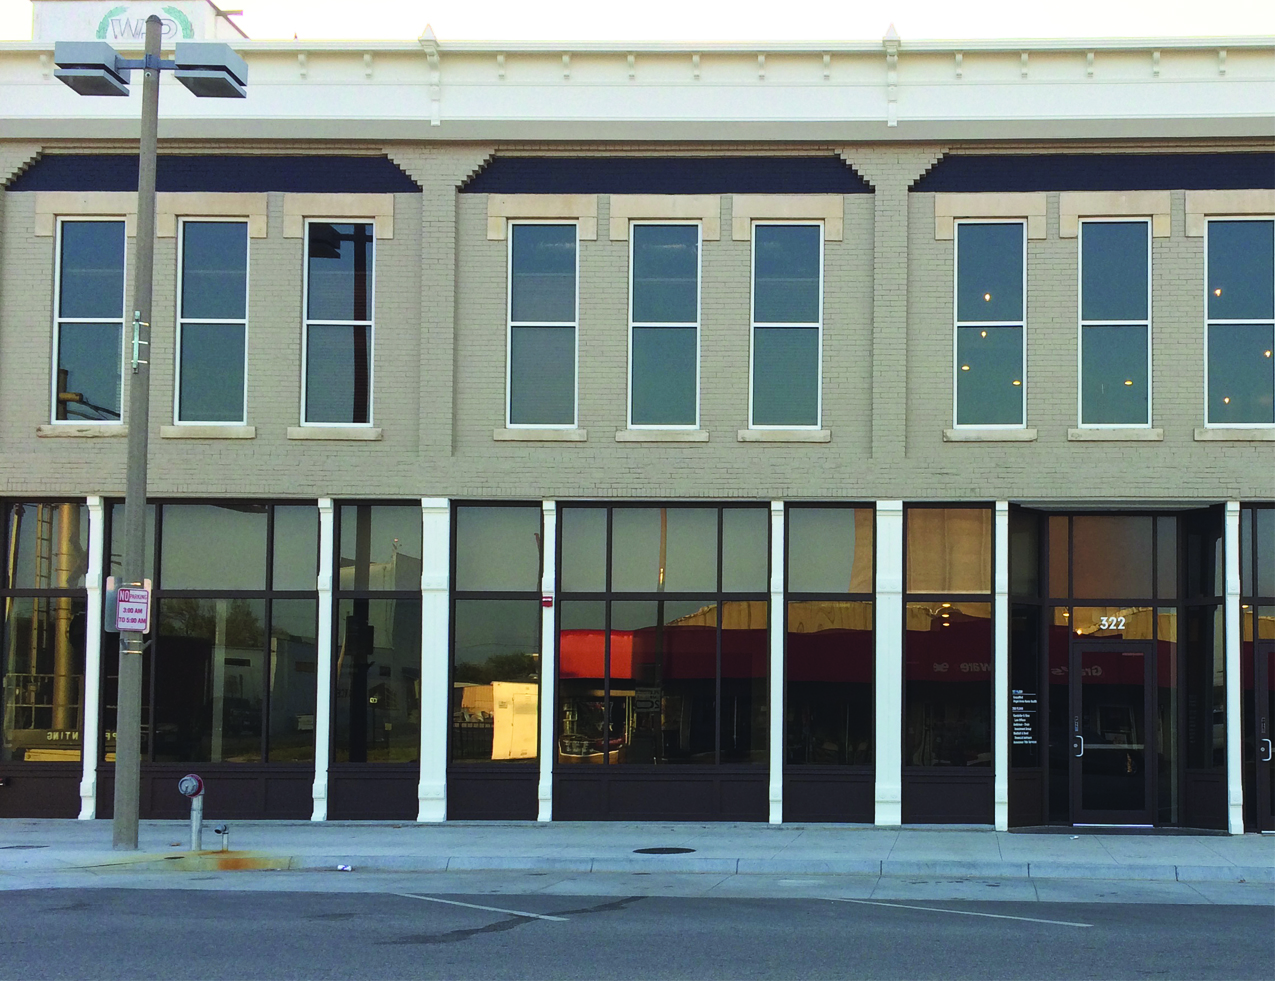 Our new clinic opened in McPherson on May 15th. - To make an appointment, call (620) 504-6187.